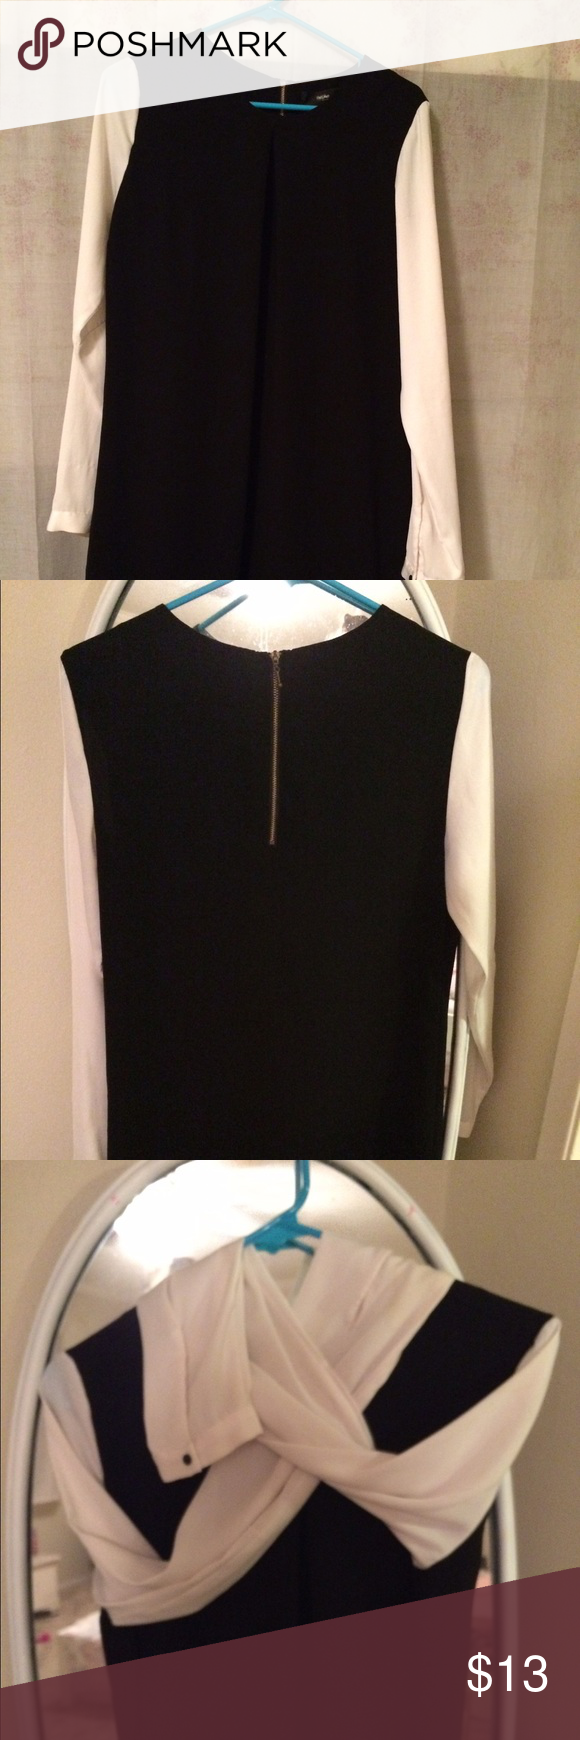 Beautiful color block dress! Never worn, excellent condition! Black and white work dress! Love the black buttons on sleeves! Classy dress!!! Hits at the knees /I'm 5'6. Dresses Midi